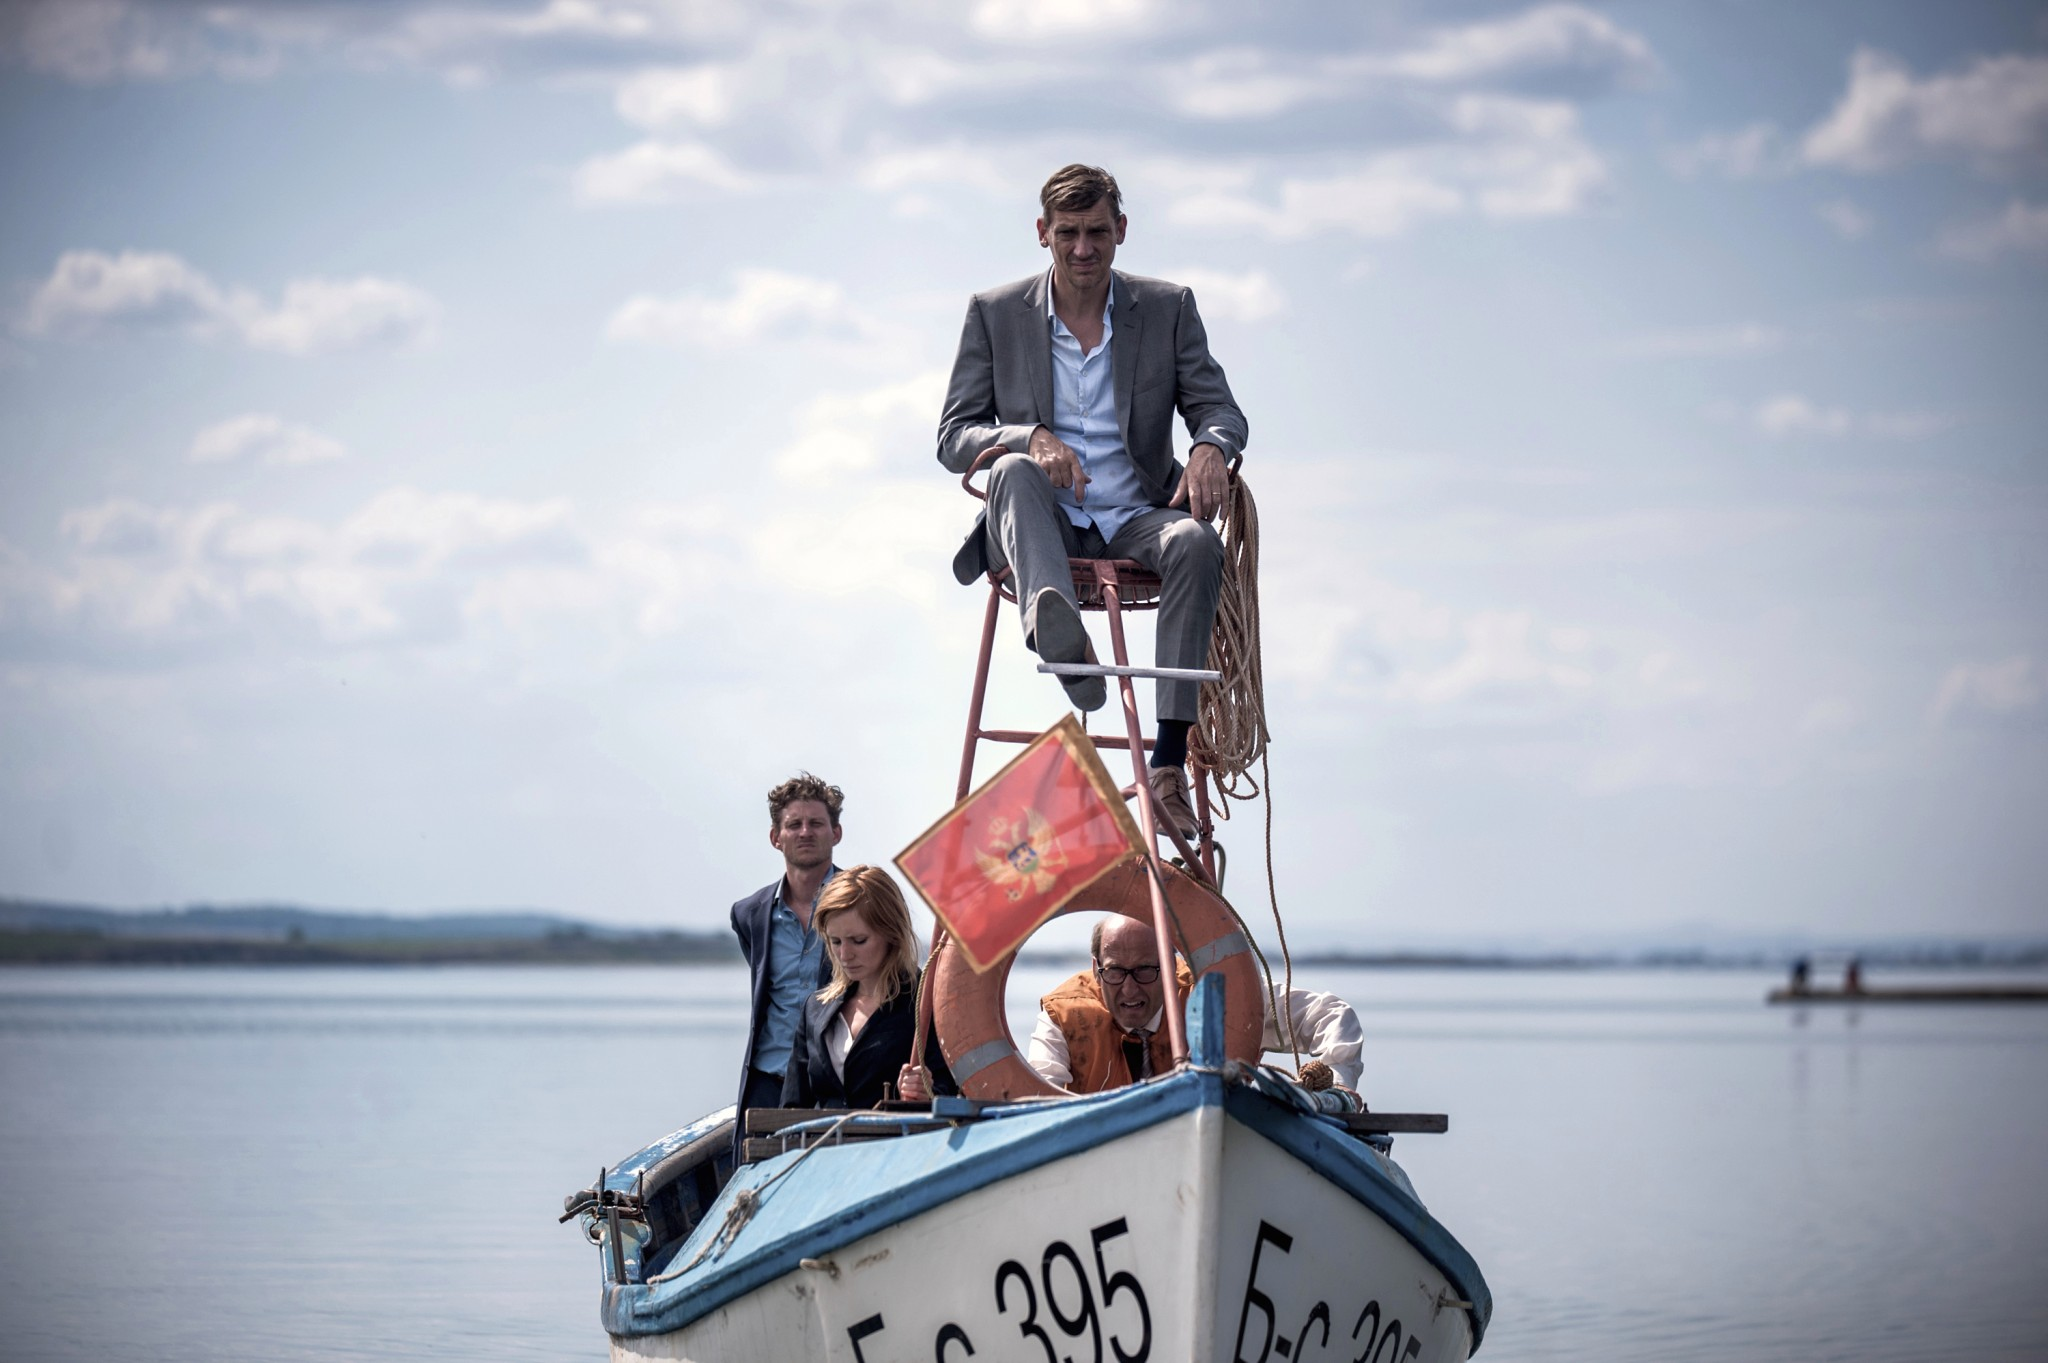 King of the Belgians image